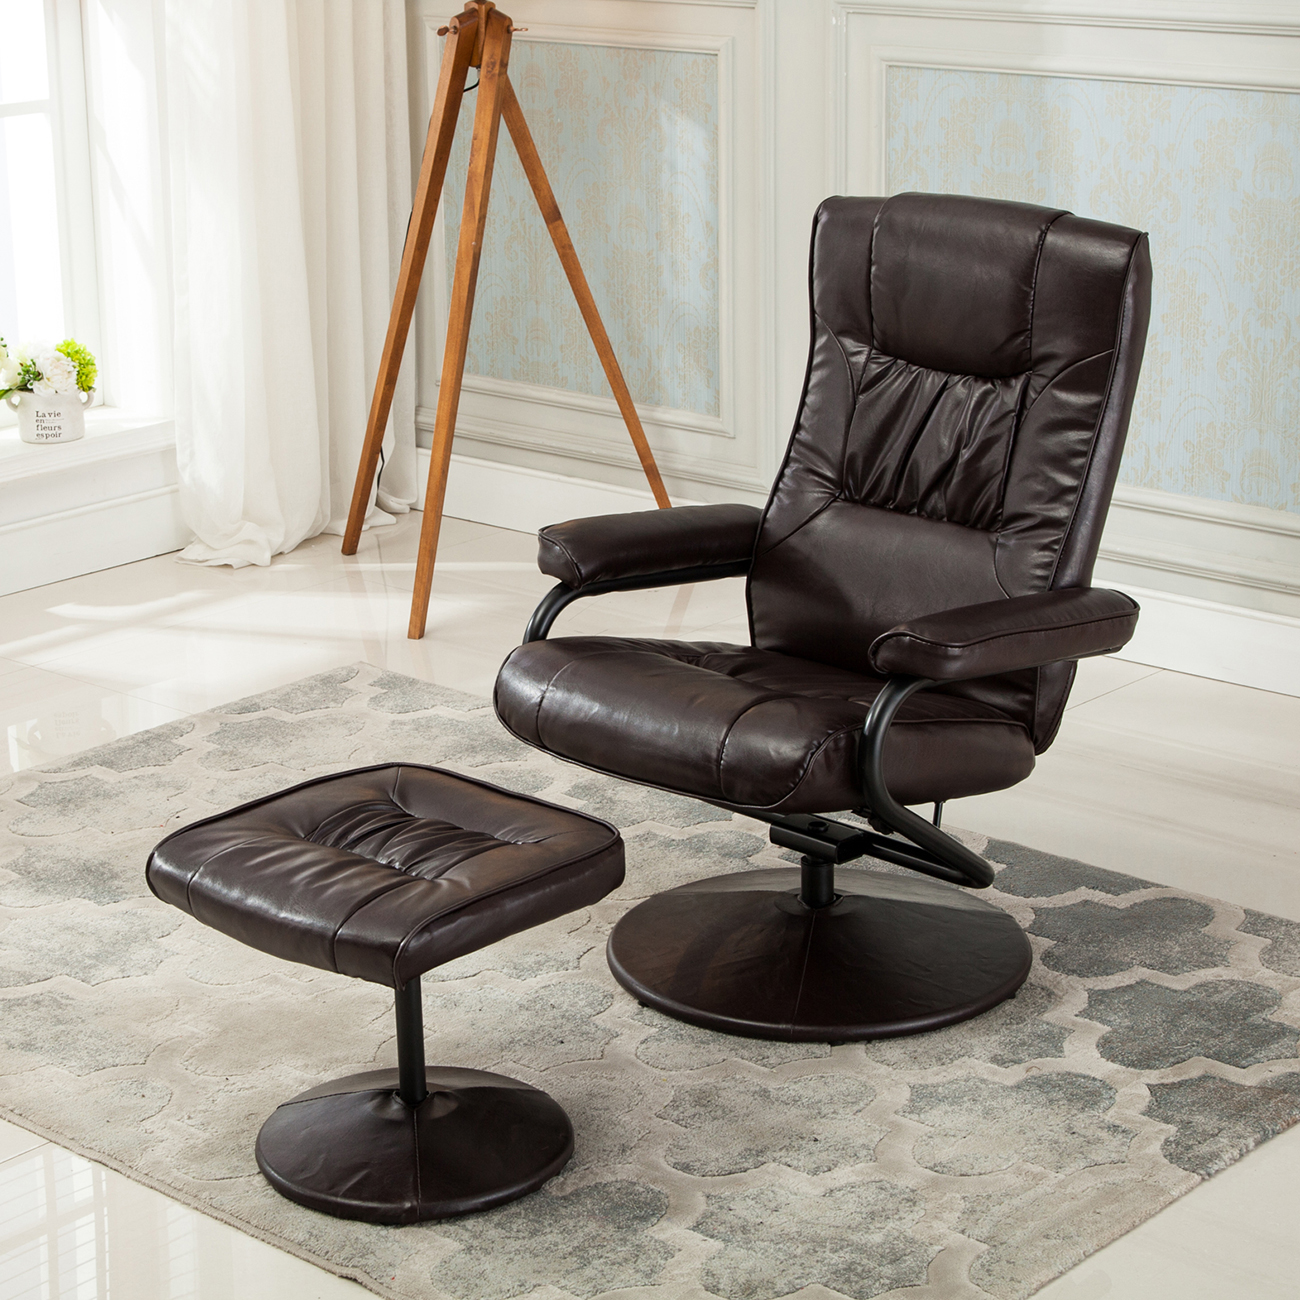 28 armchair with ottoman set modway divulge arm chair and o